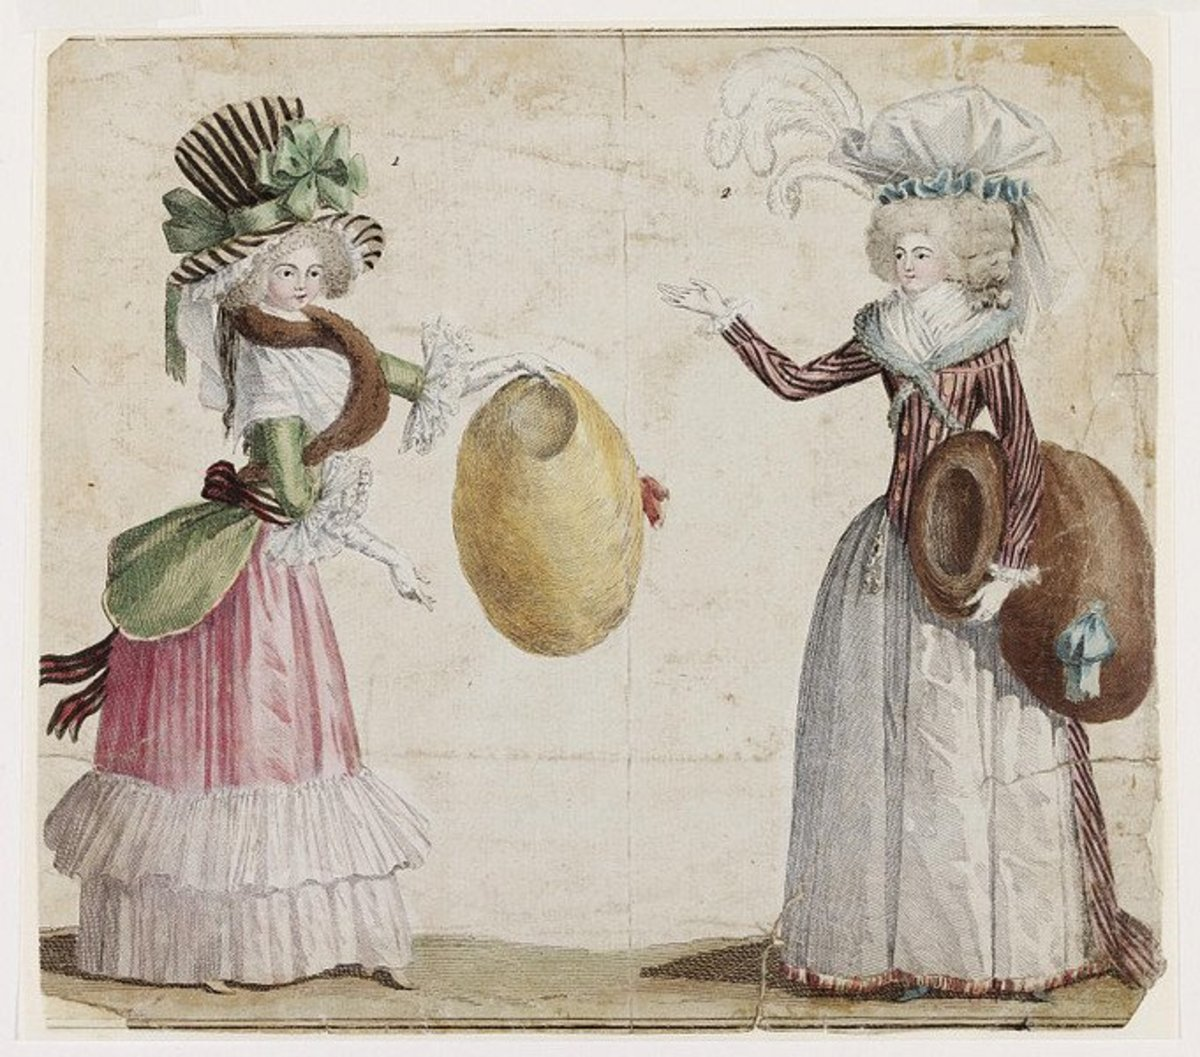 Women's Fashions of the 1700s